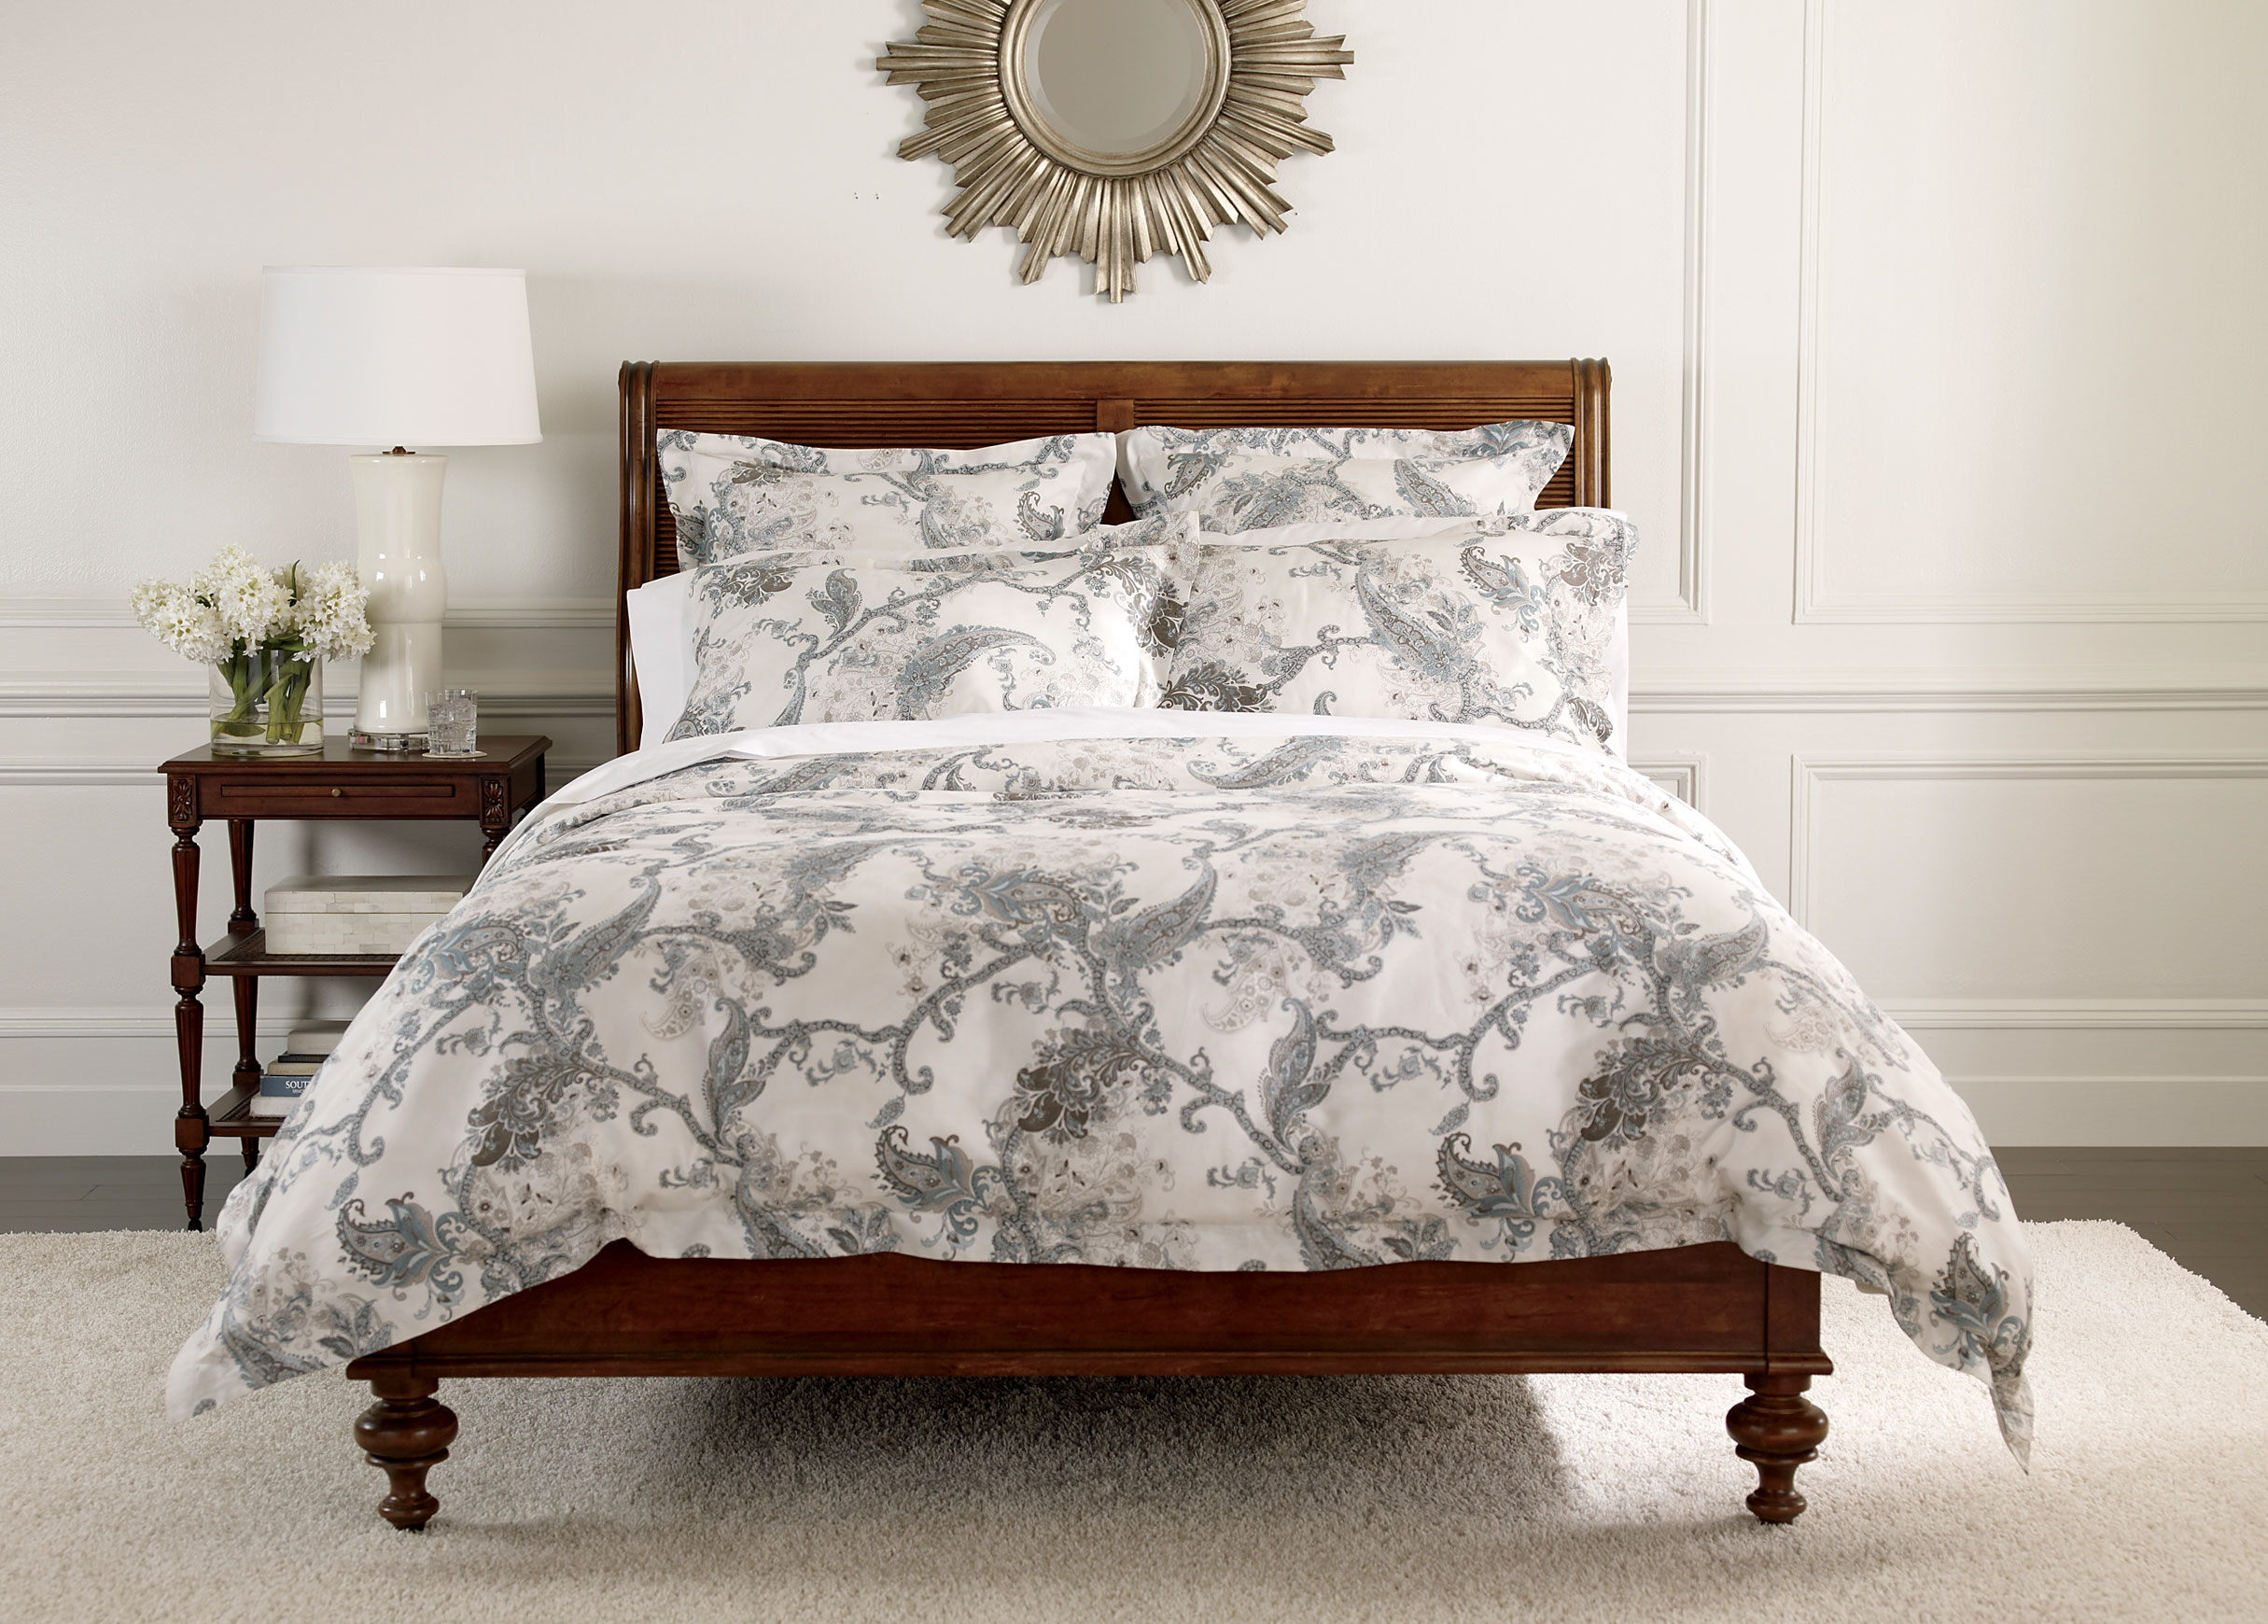 guides pattern bedding blue cheap get deals find of paisley lauren line ralph set at cover duvet quotations shopping in shades piece on red